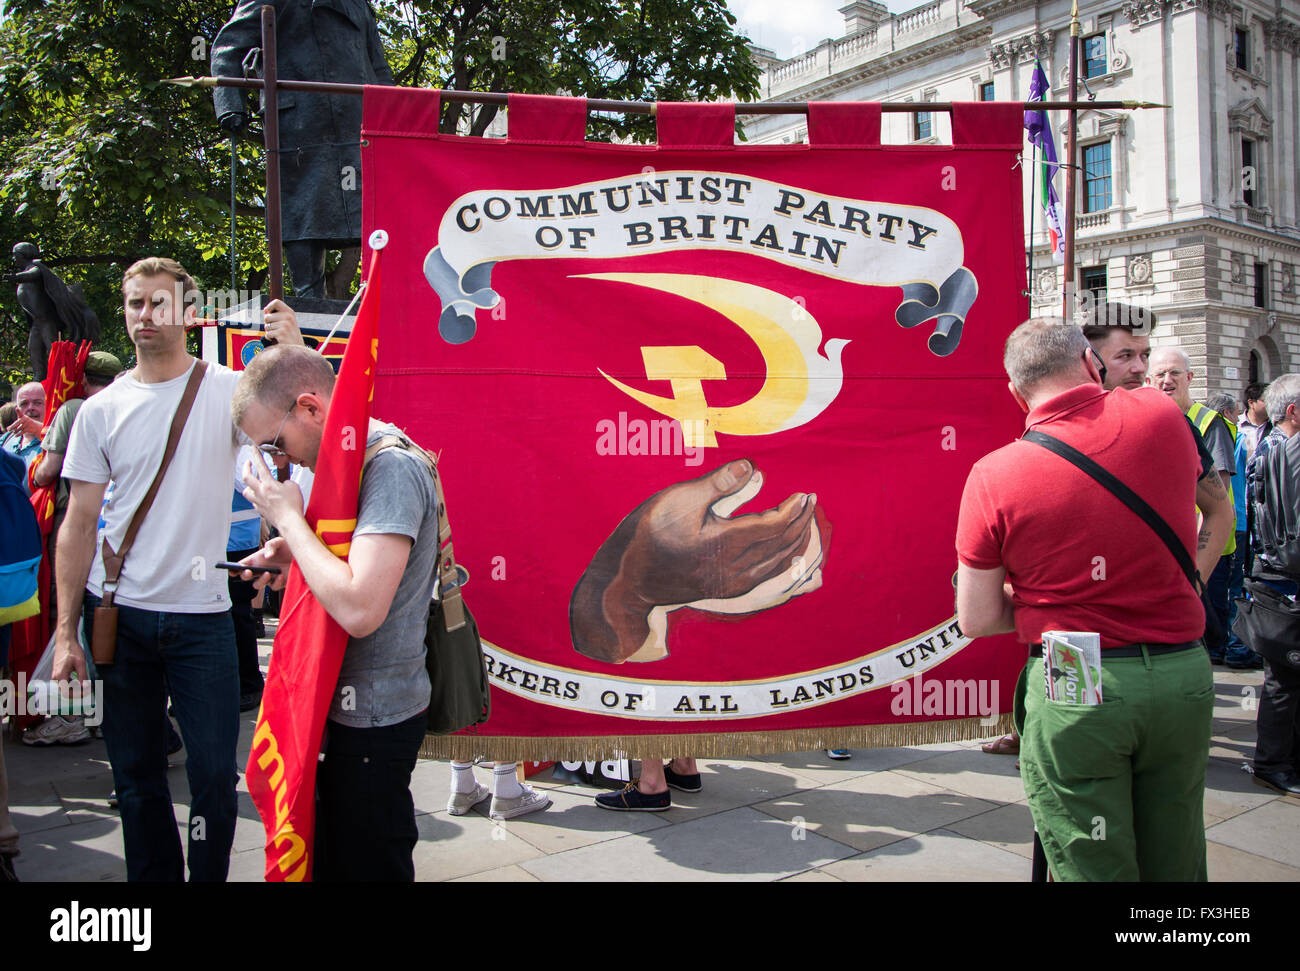 Communist Party at 'No More Austerity' protest march, London, June 21, 2014 - Stock Image